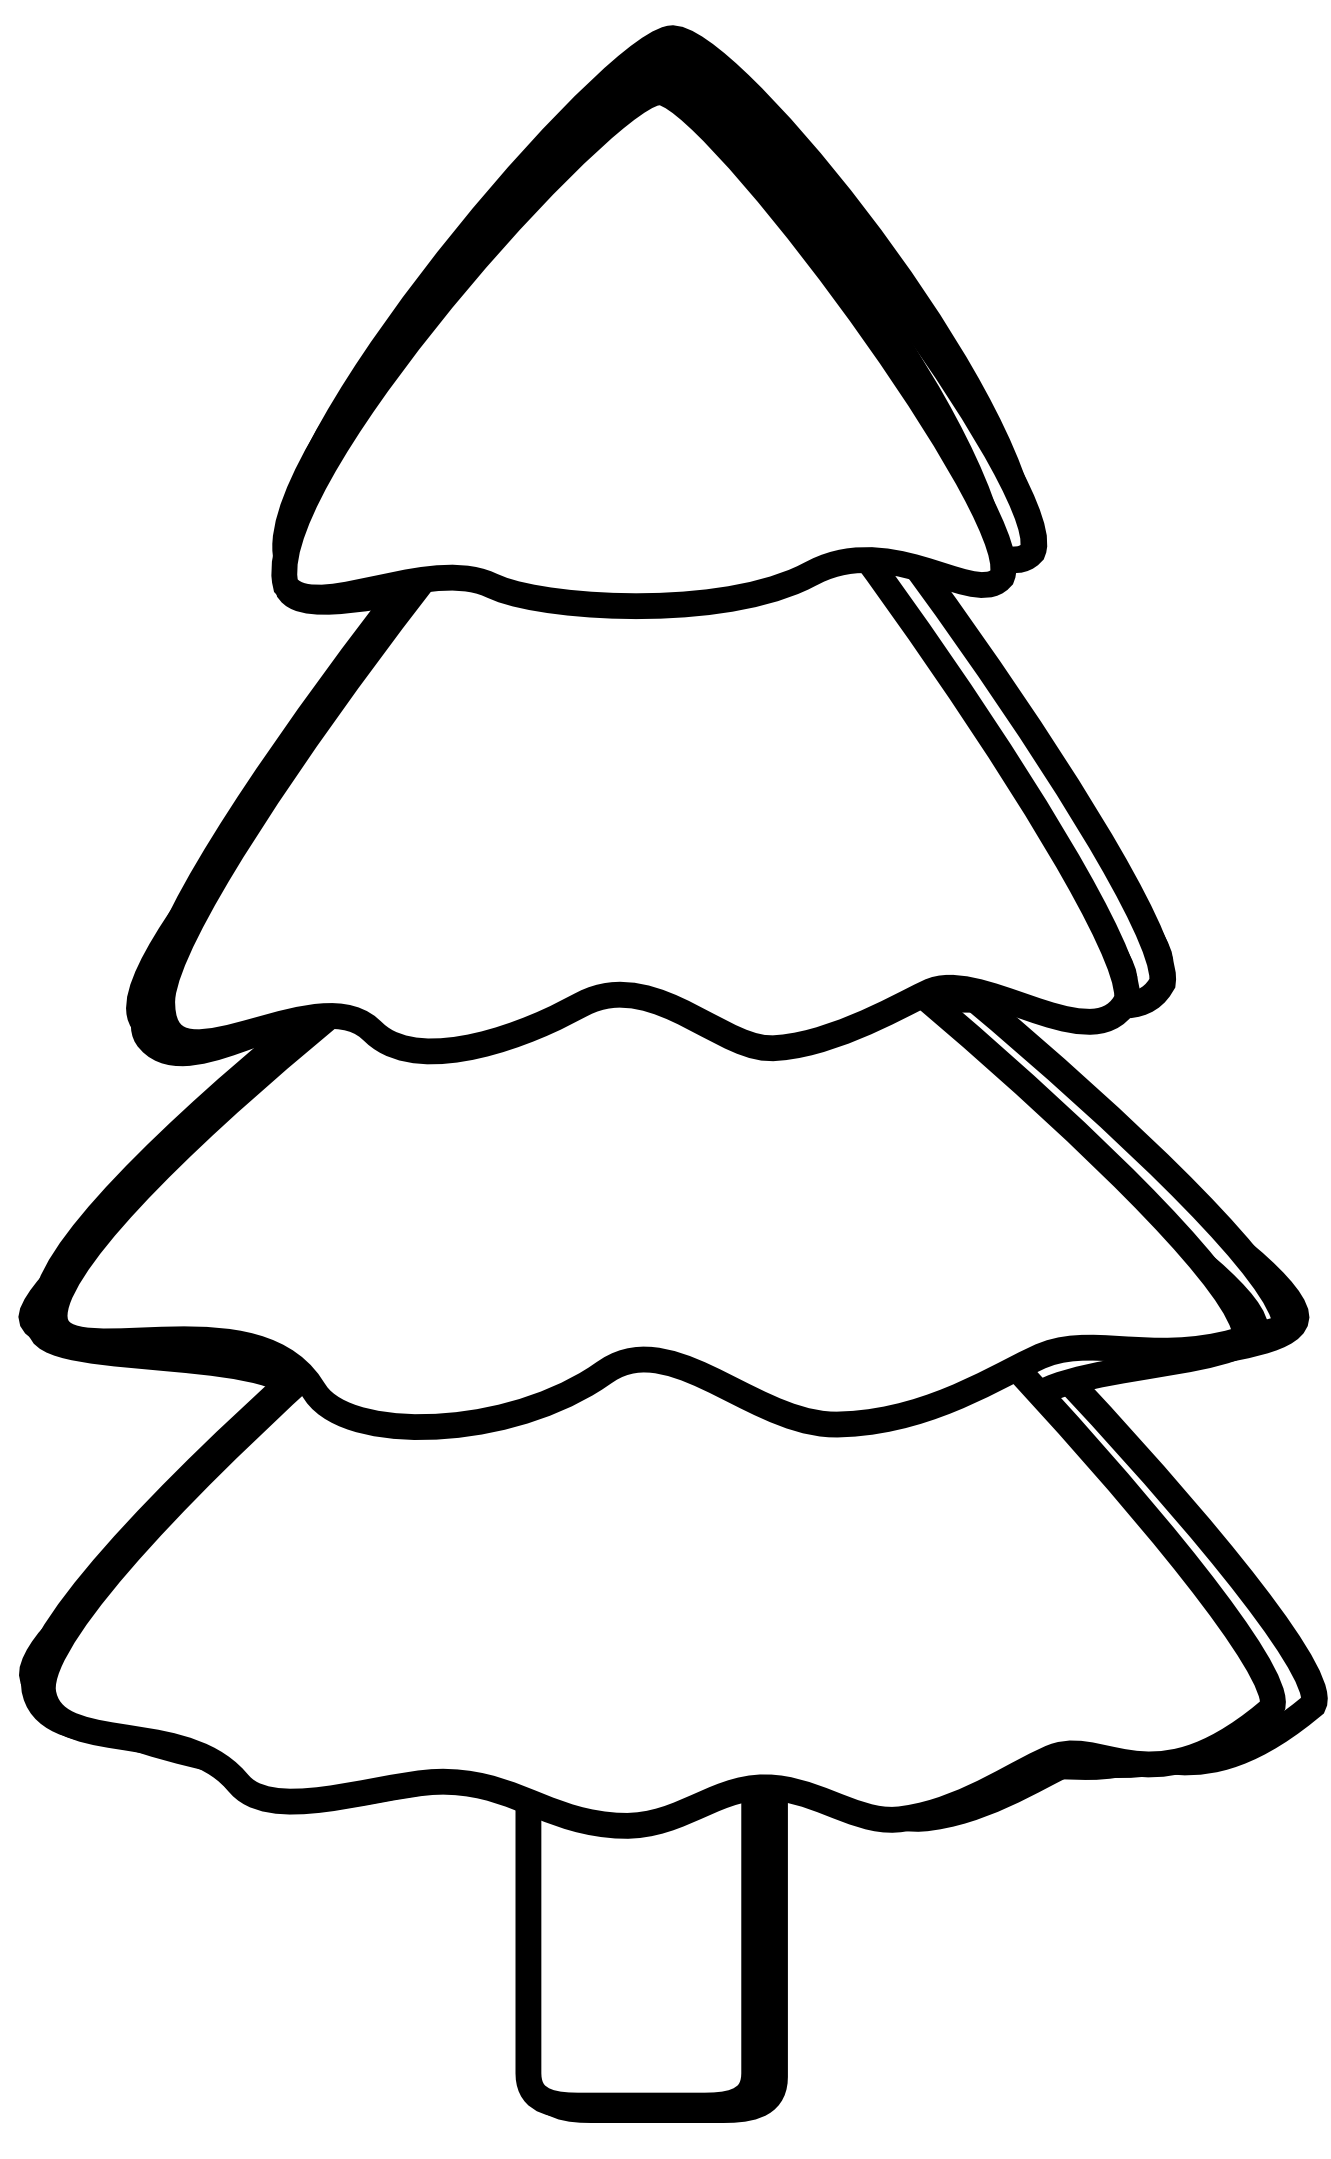 Tree Clip Art Black And White Clip art, Clipart black